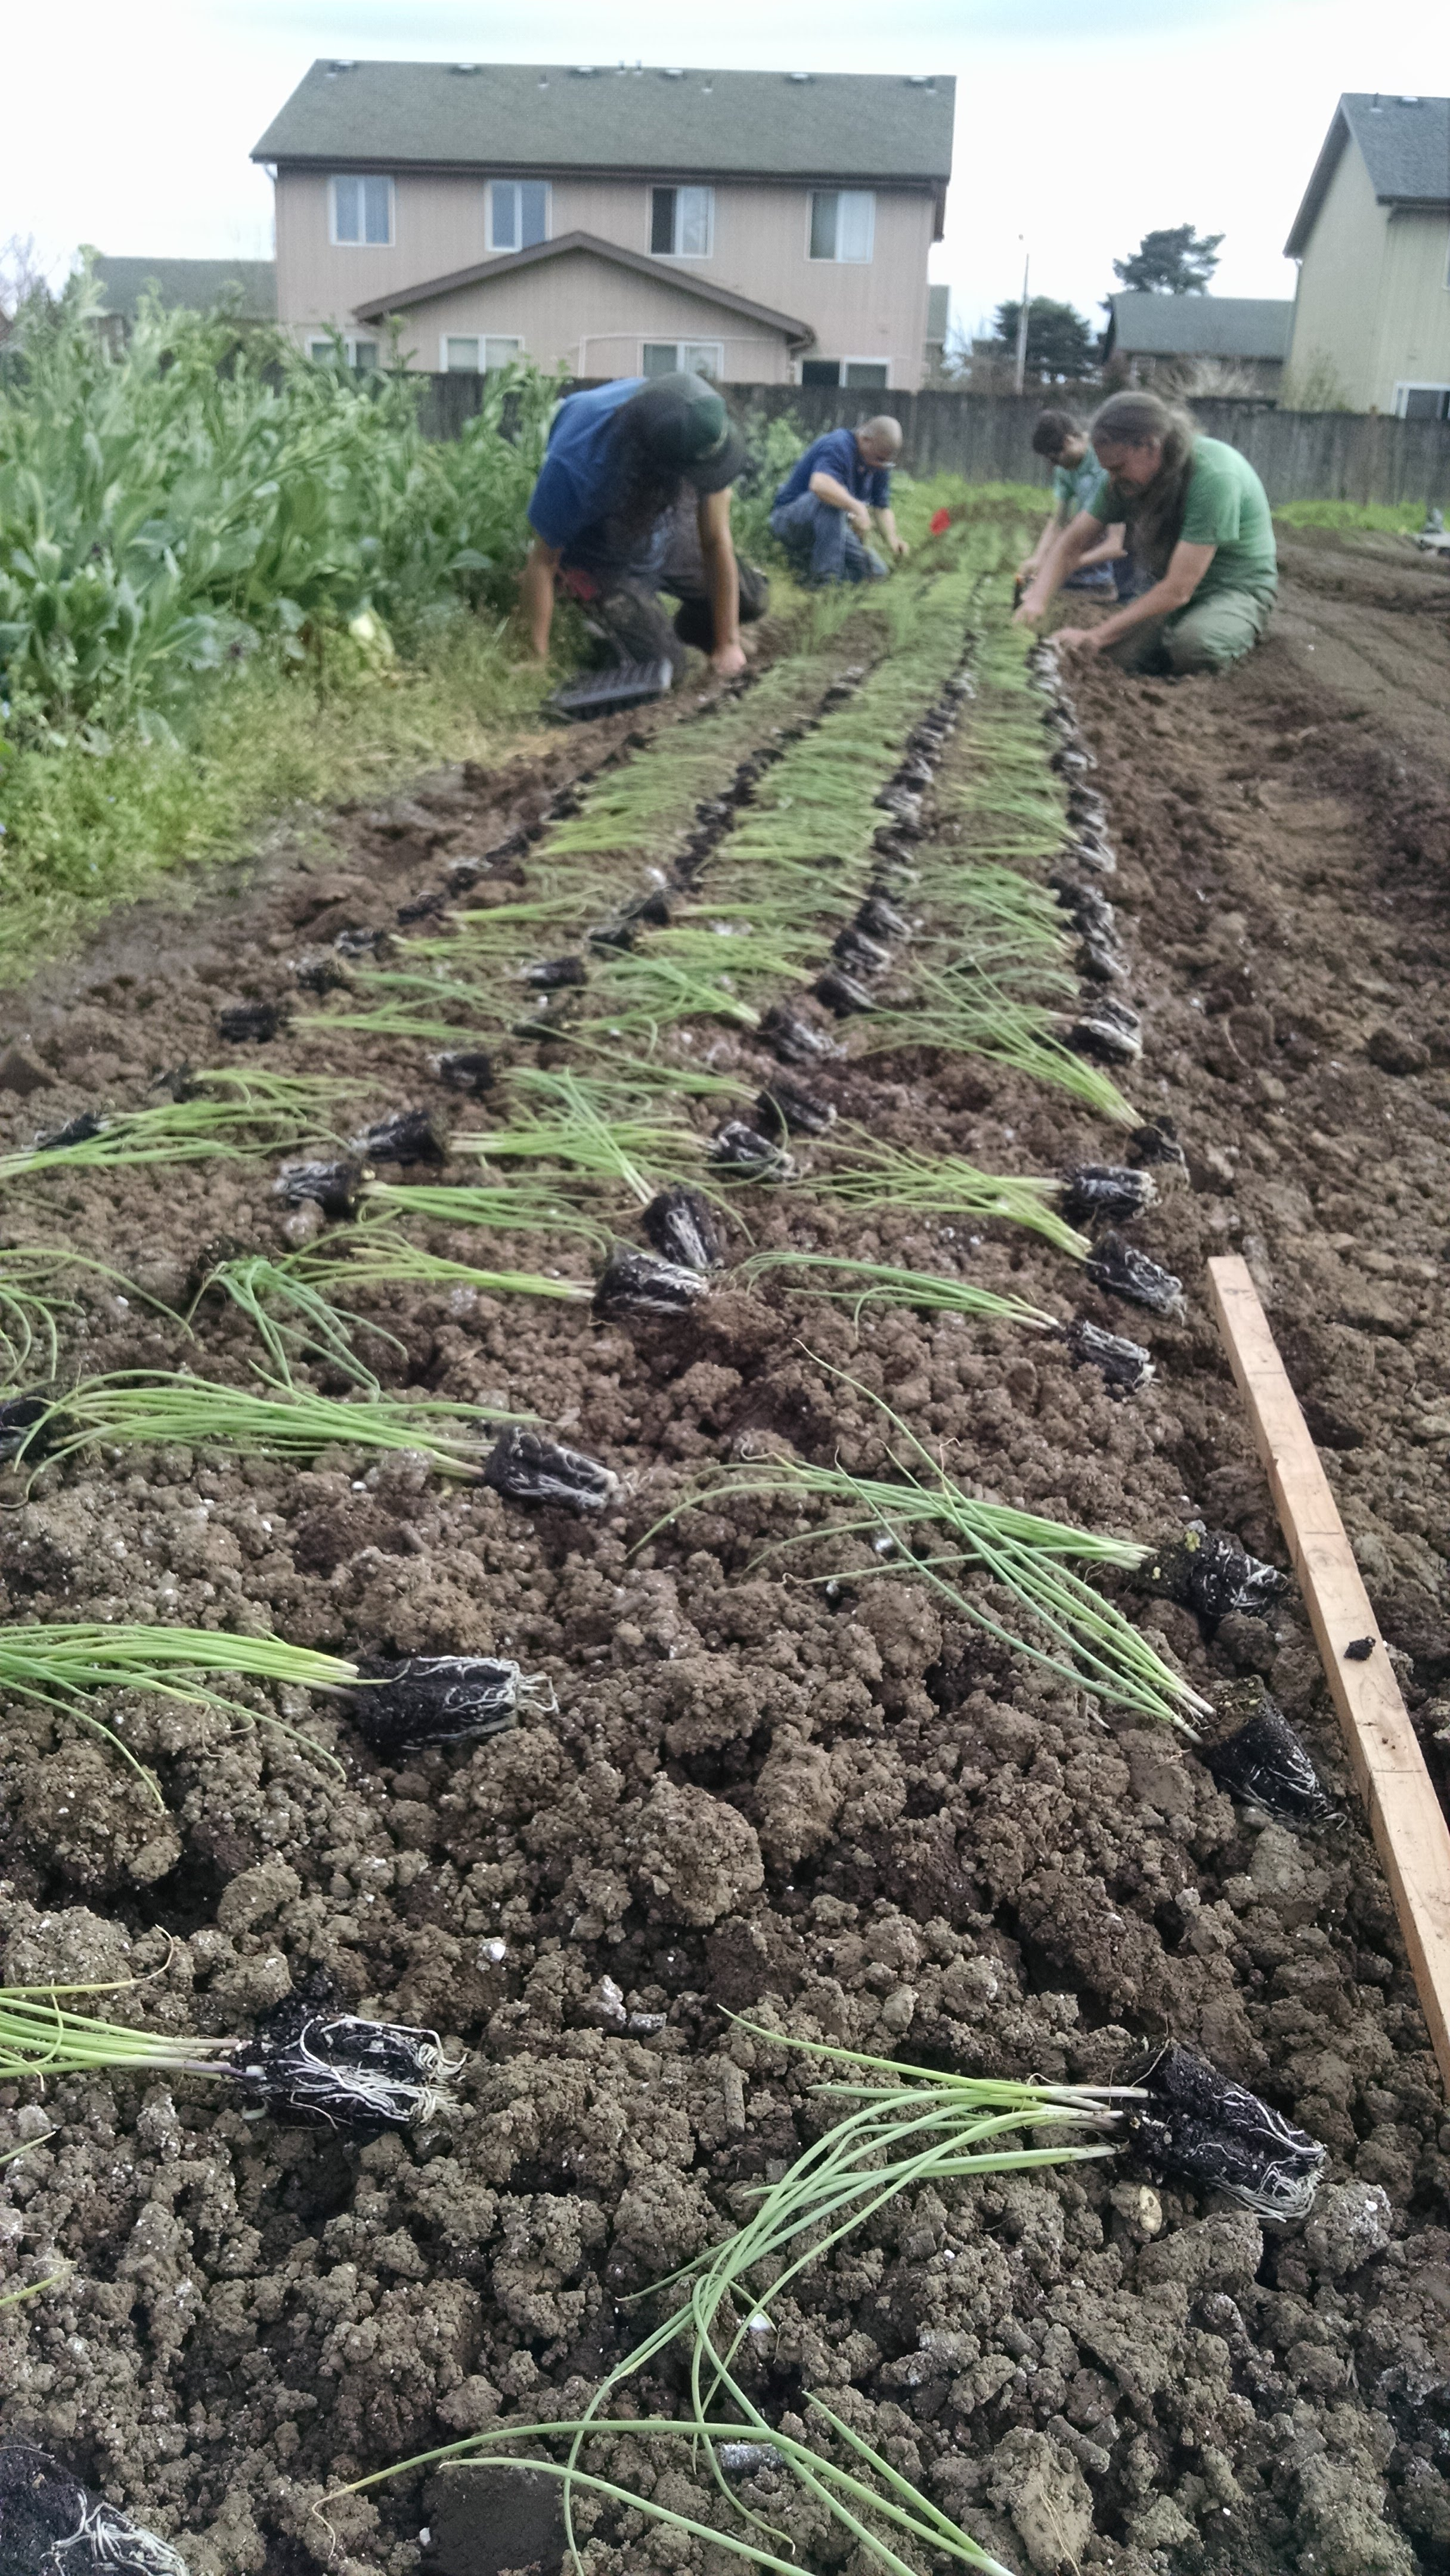 Transplanting green onions to finish the last dry day in the foreseeable future